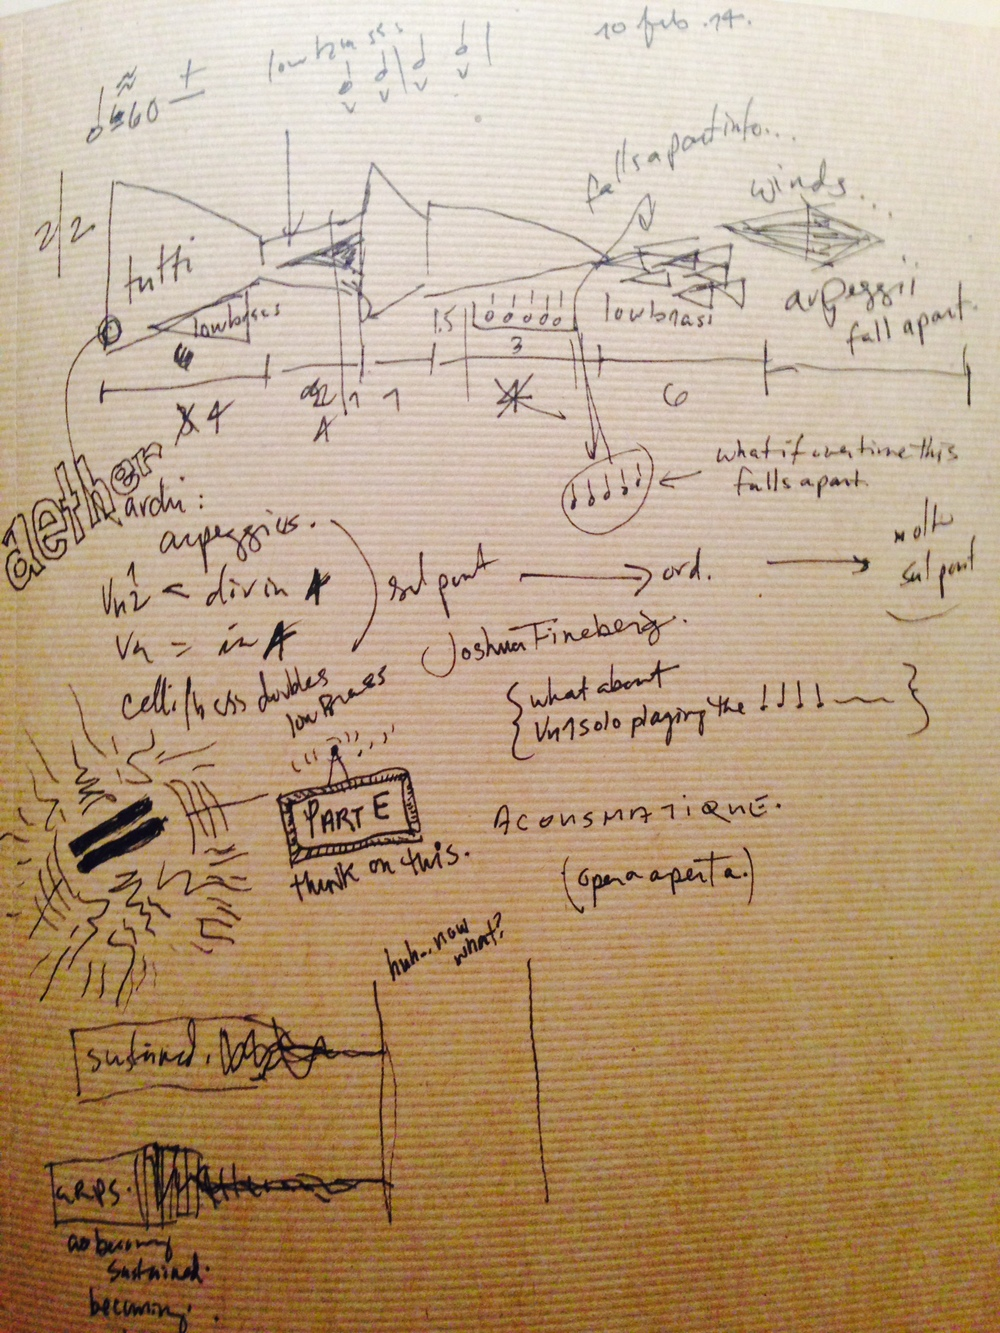 Notebook sketch of the hypothetical last (and missing) movement of Michael Jackson.